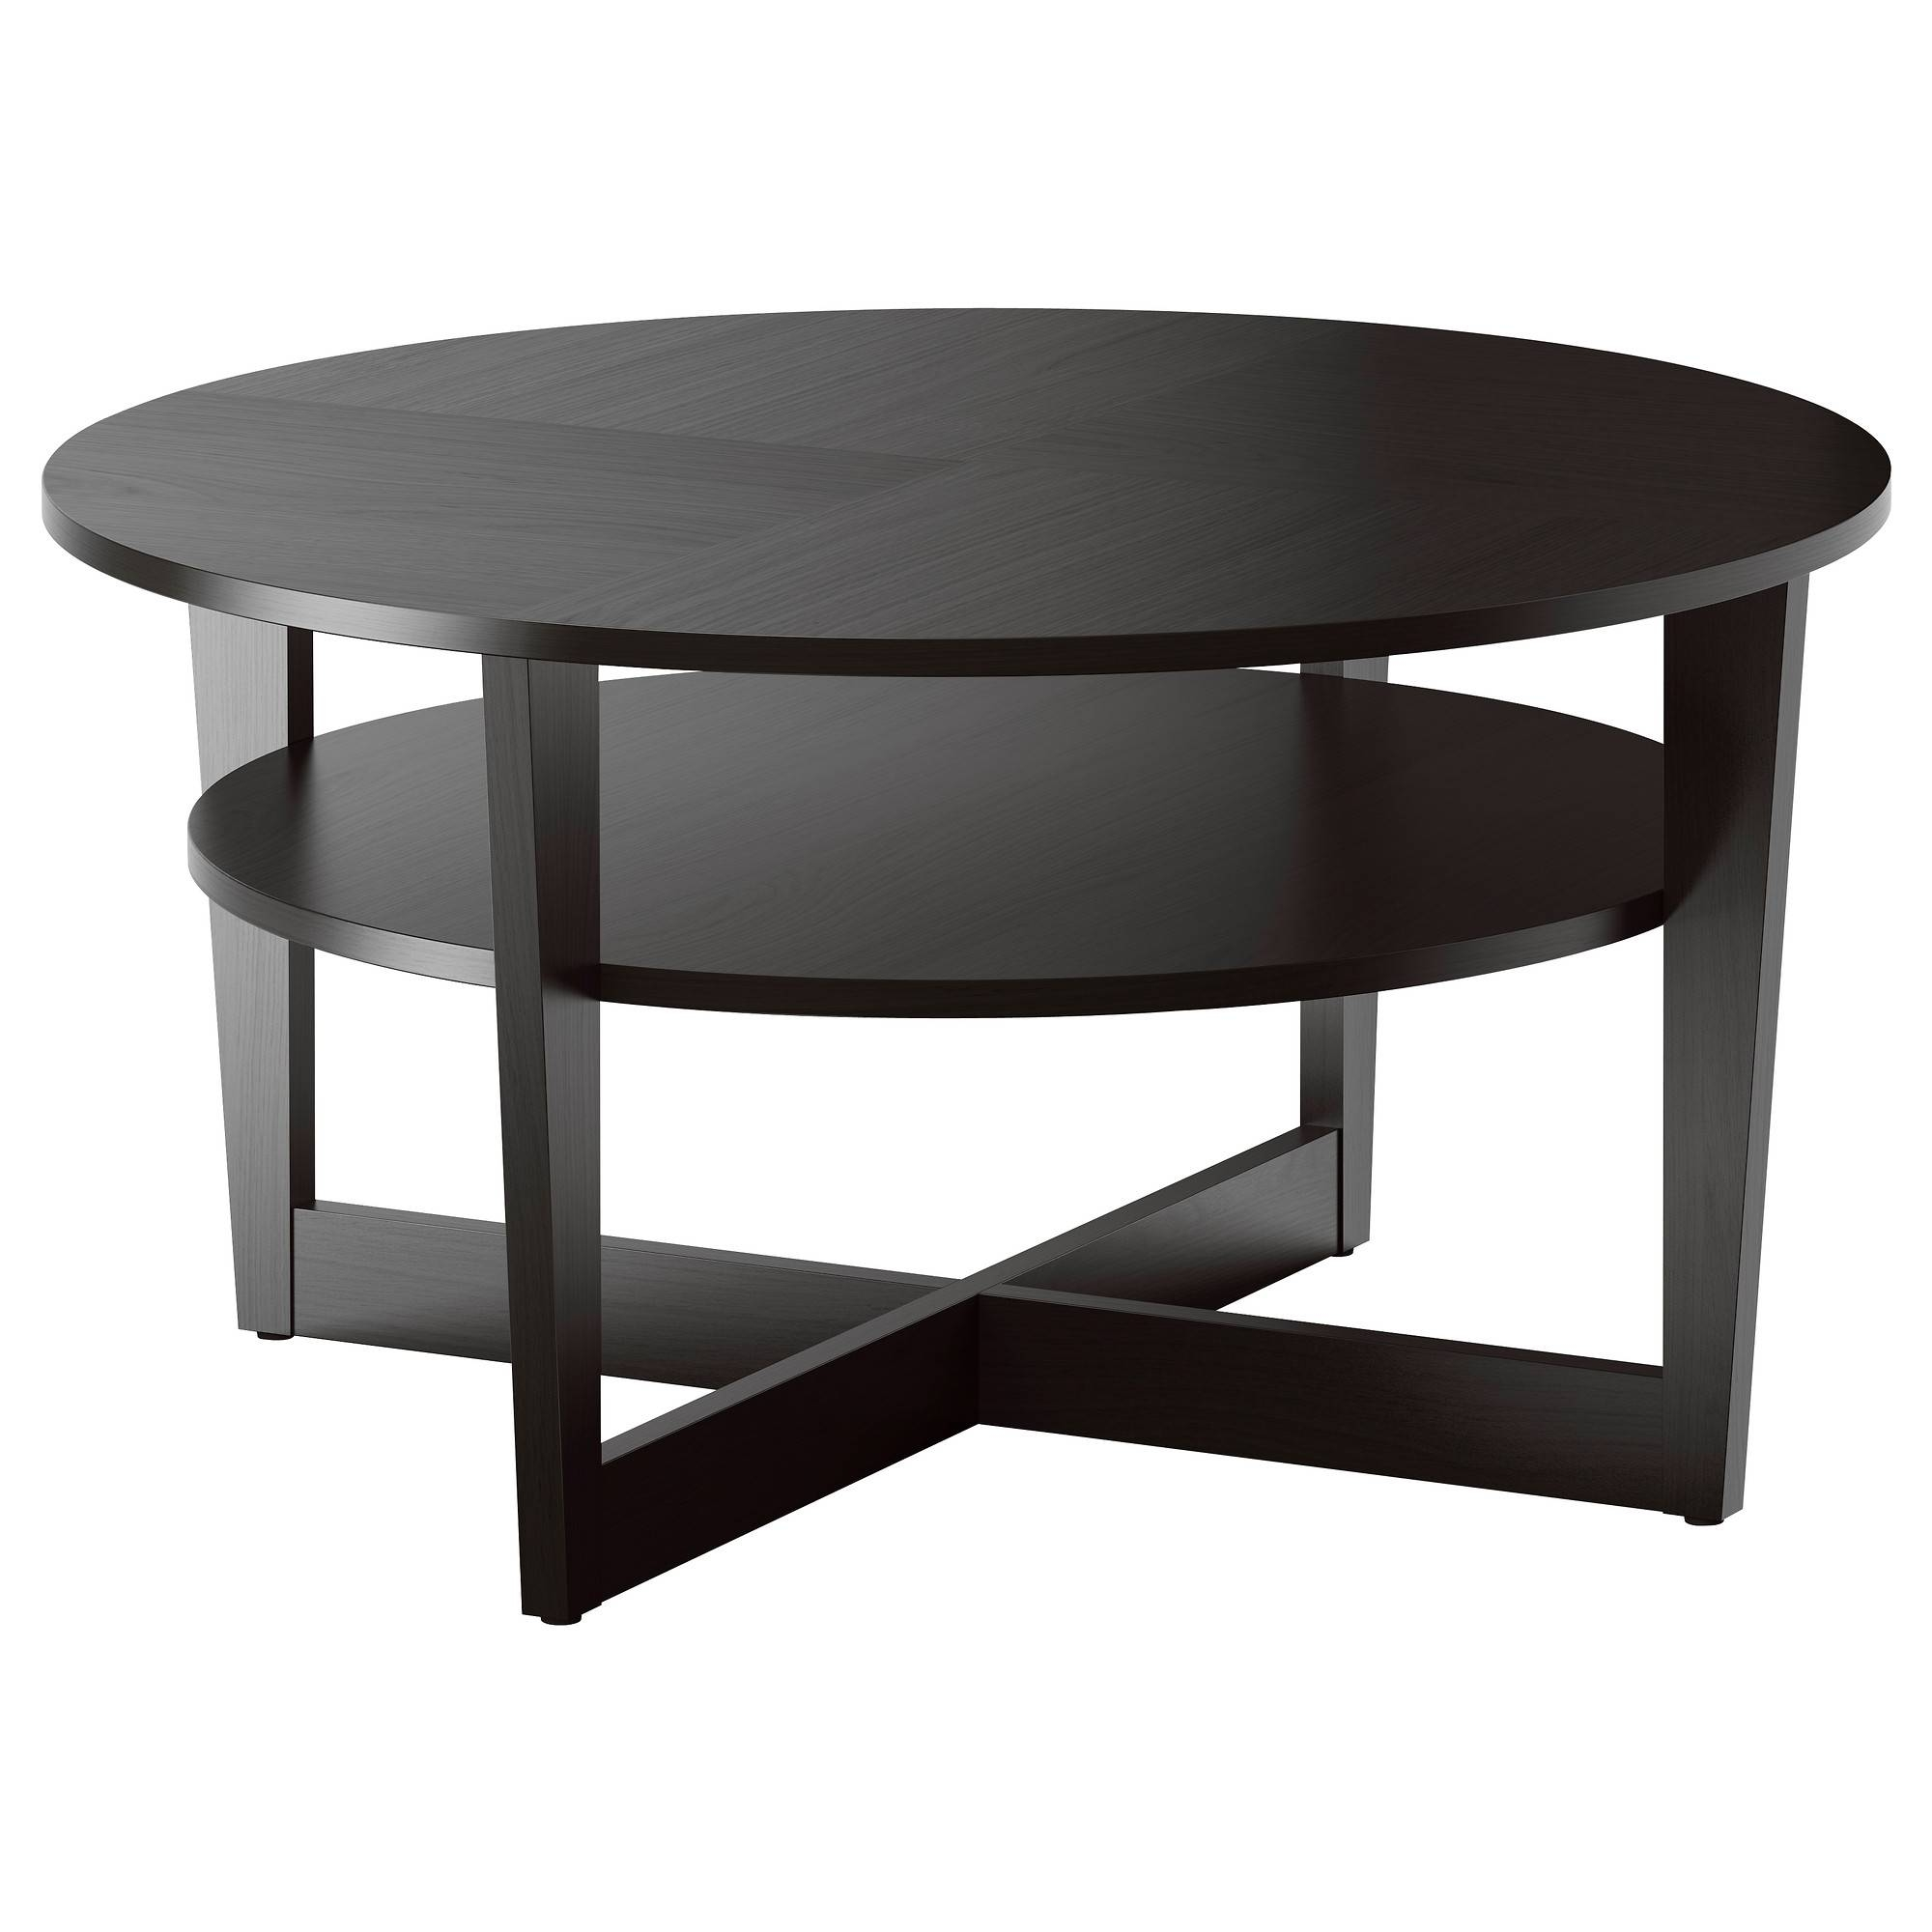 Vejmon Coffee Table - Black-Brown - Ikea within Circular Coffee Tables (Image 30 of 30)